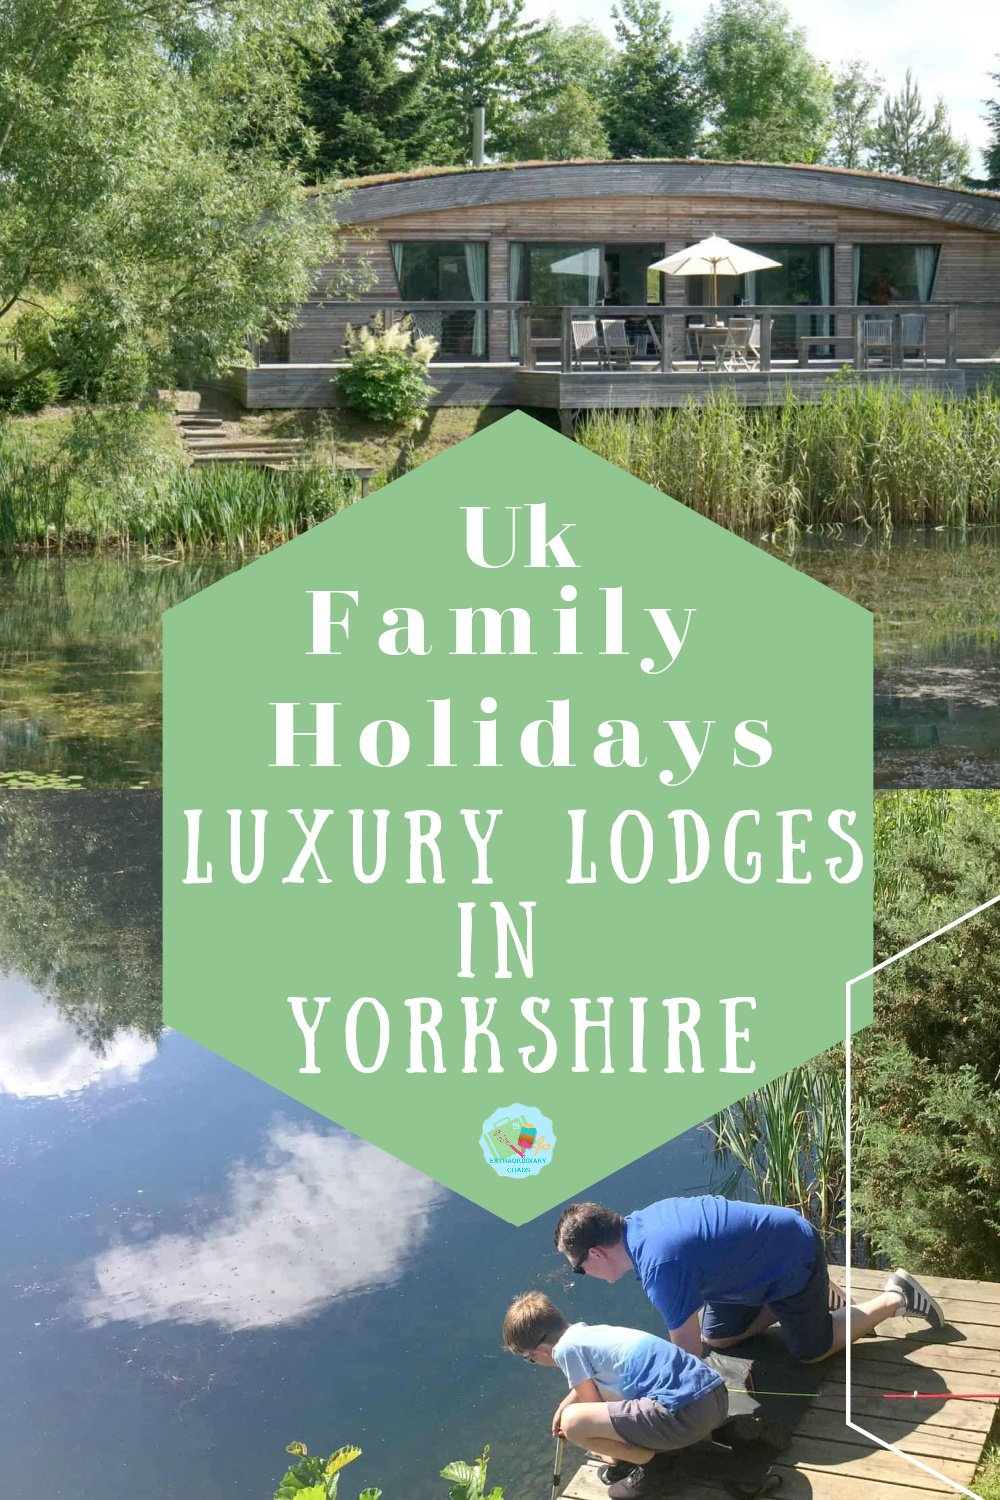 Tranquil Luxury Lodges in Richmond Yorkshire for family holidays around a fishing lake